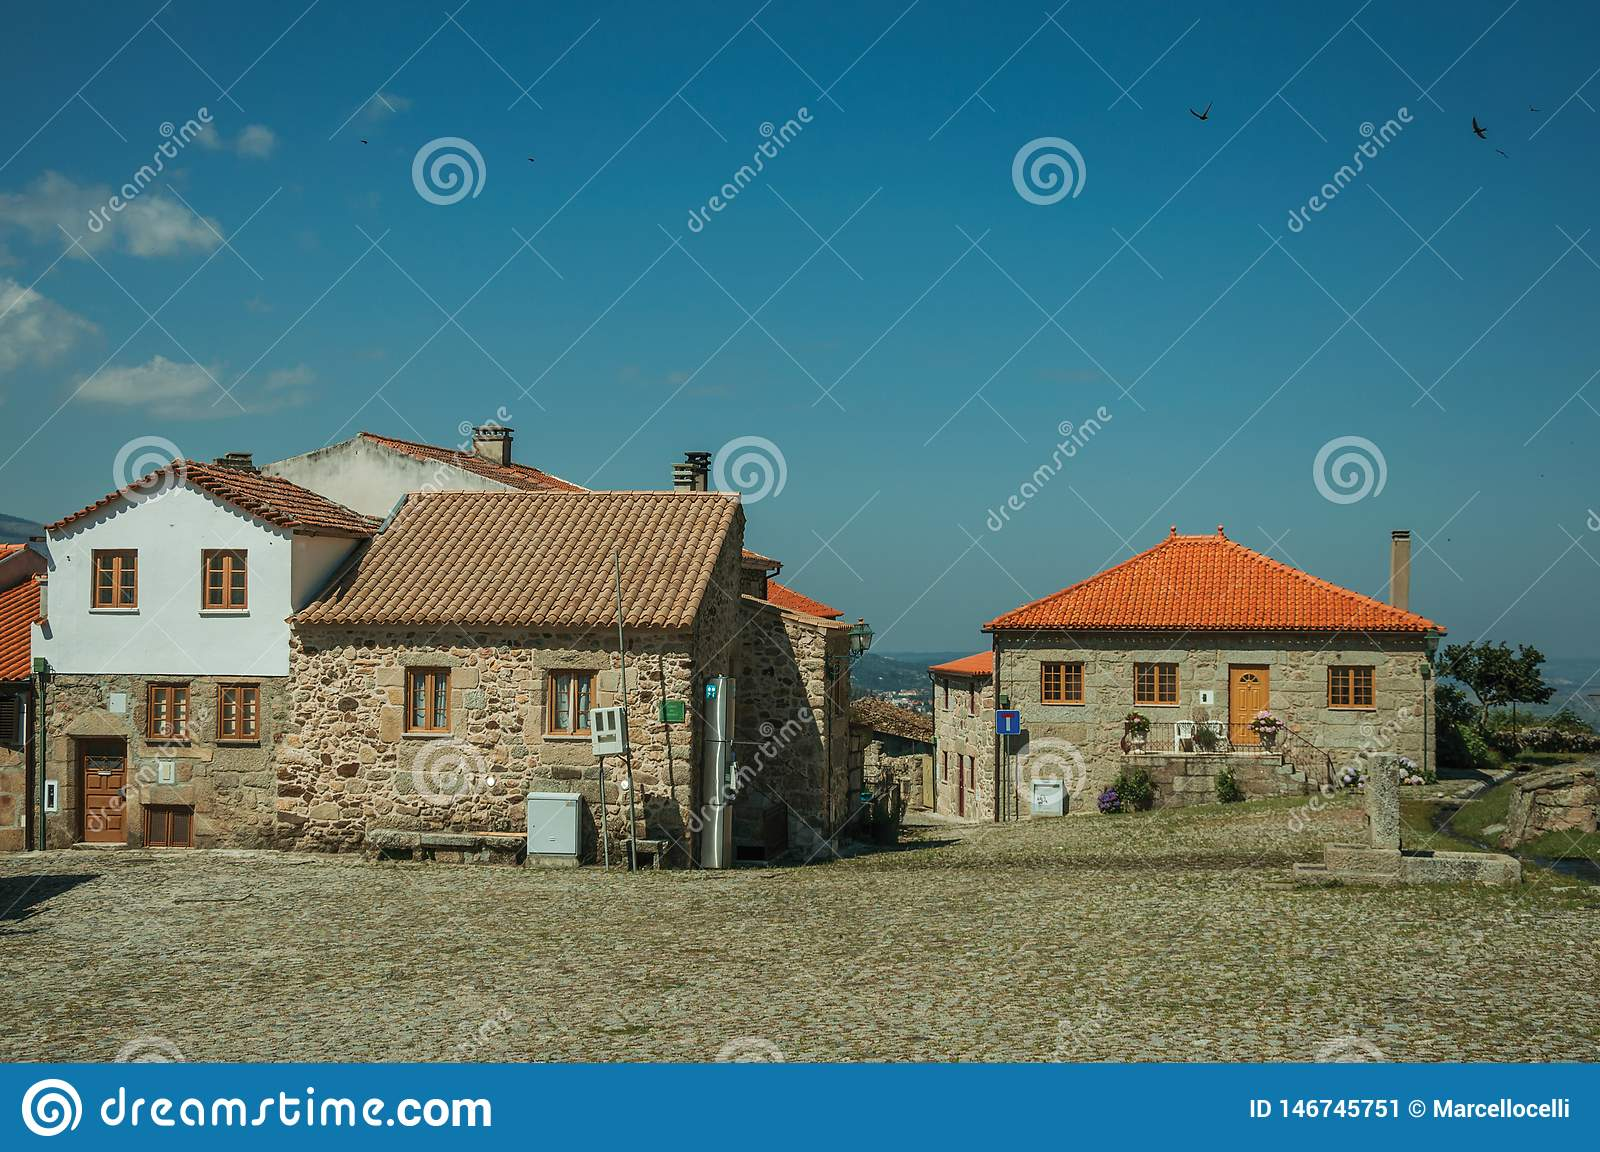 Old rustic houses made of stone in front of square